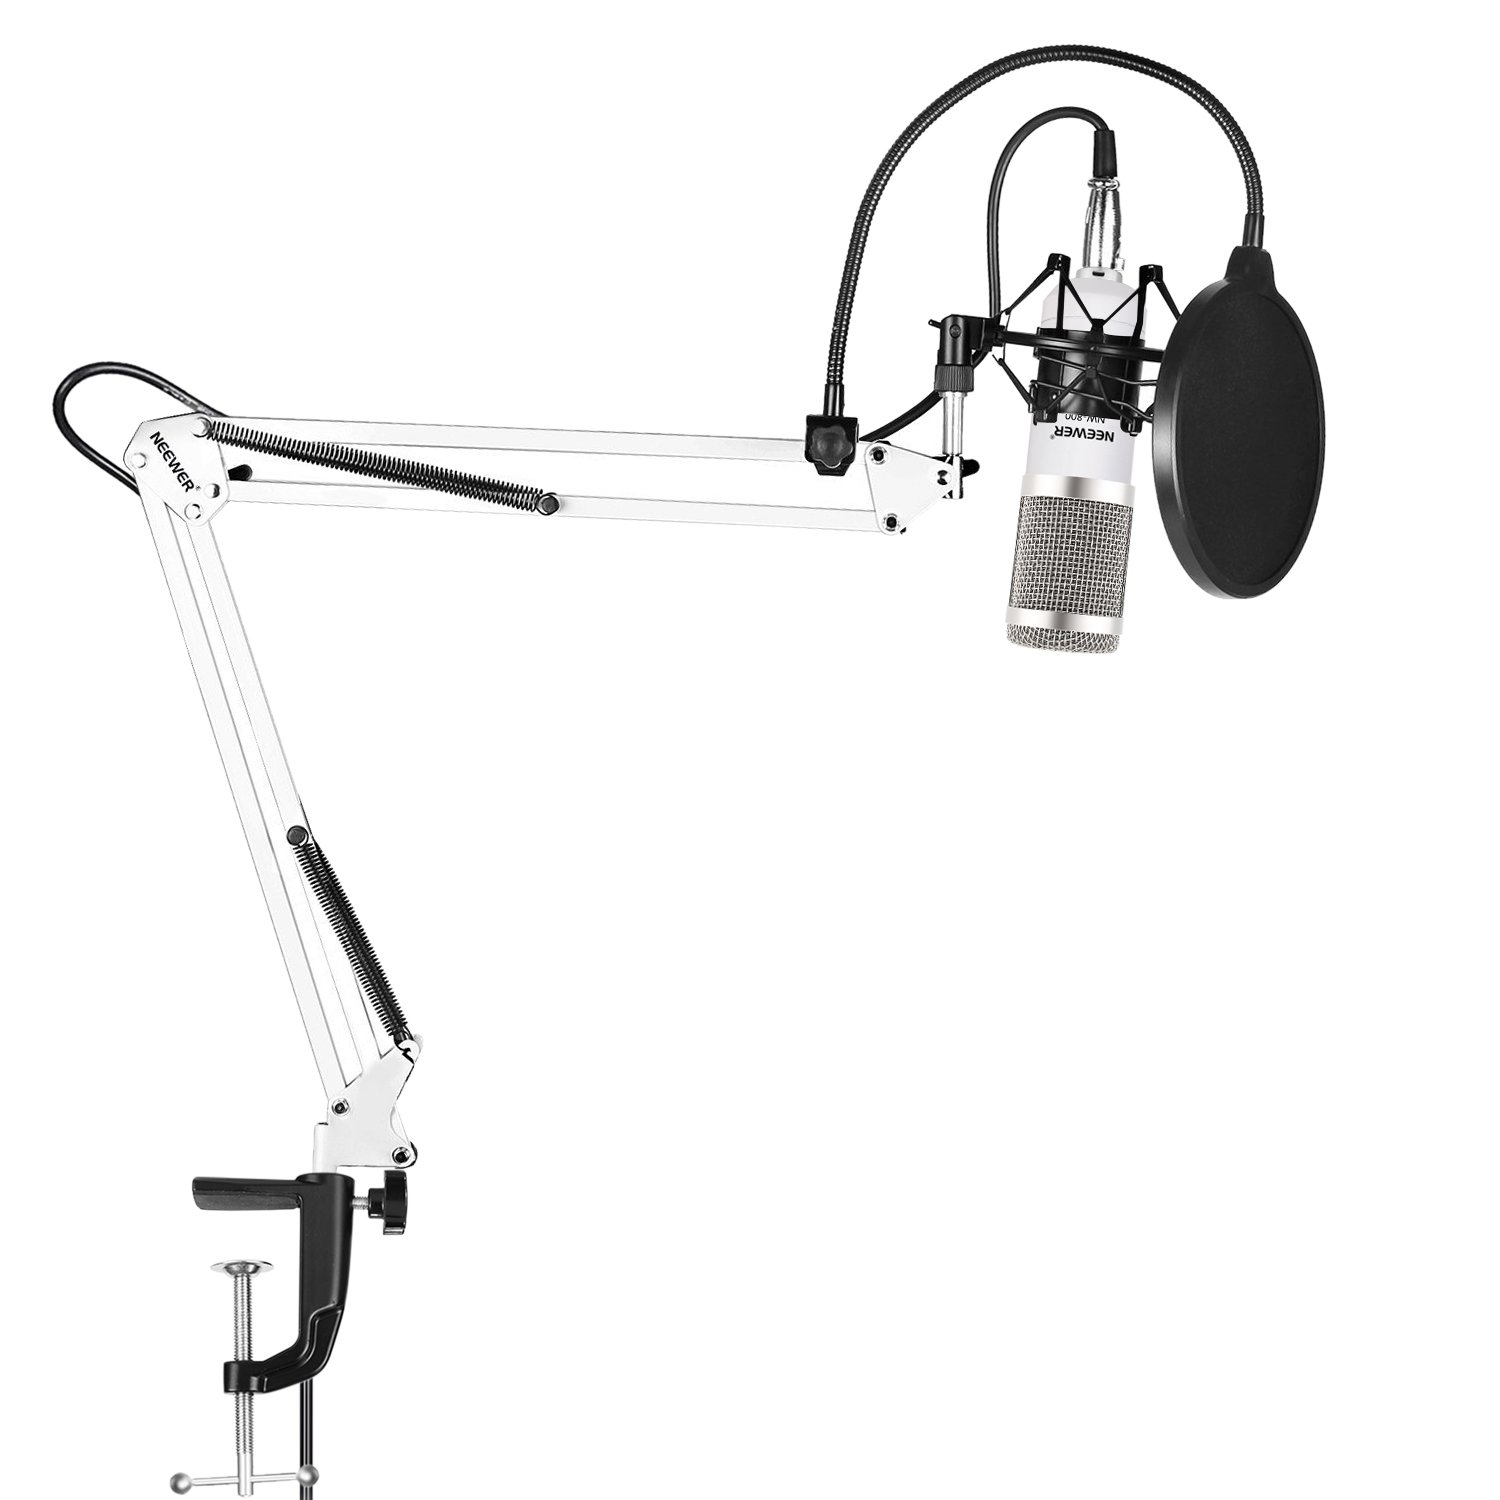 Neewer NW-800 Pro Studio Broadcasting Recording Condenser Mic Kit with NW-35 Adjustable Mic Suspension Scissor Arm Stand with Black Shock Mount and Table Mounting Clamp, Pop Filter(Blue) 40093341